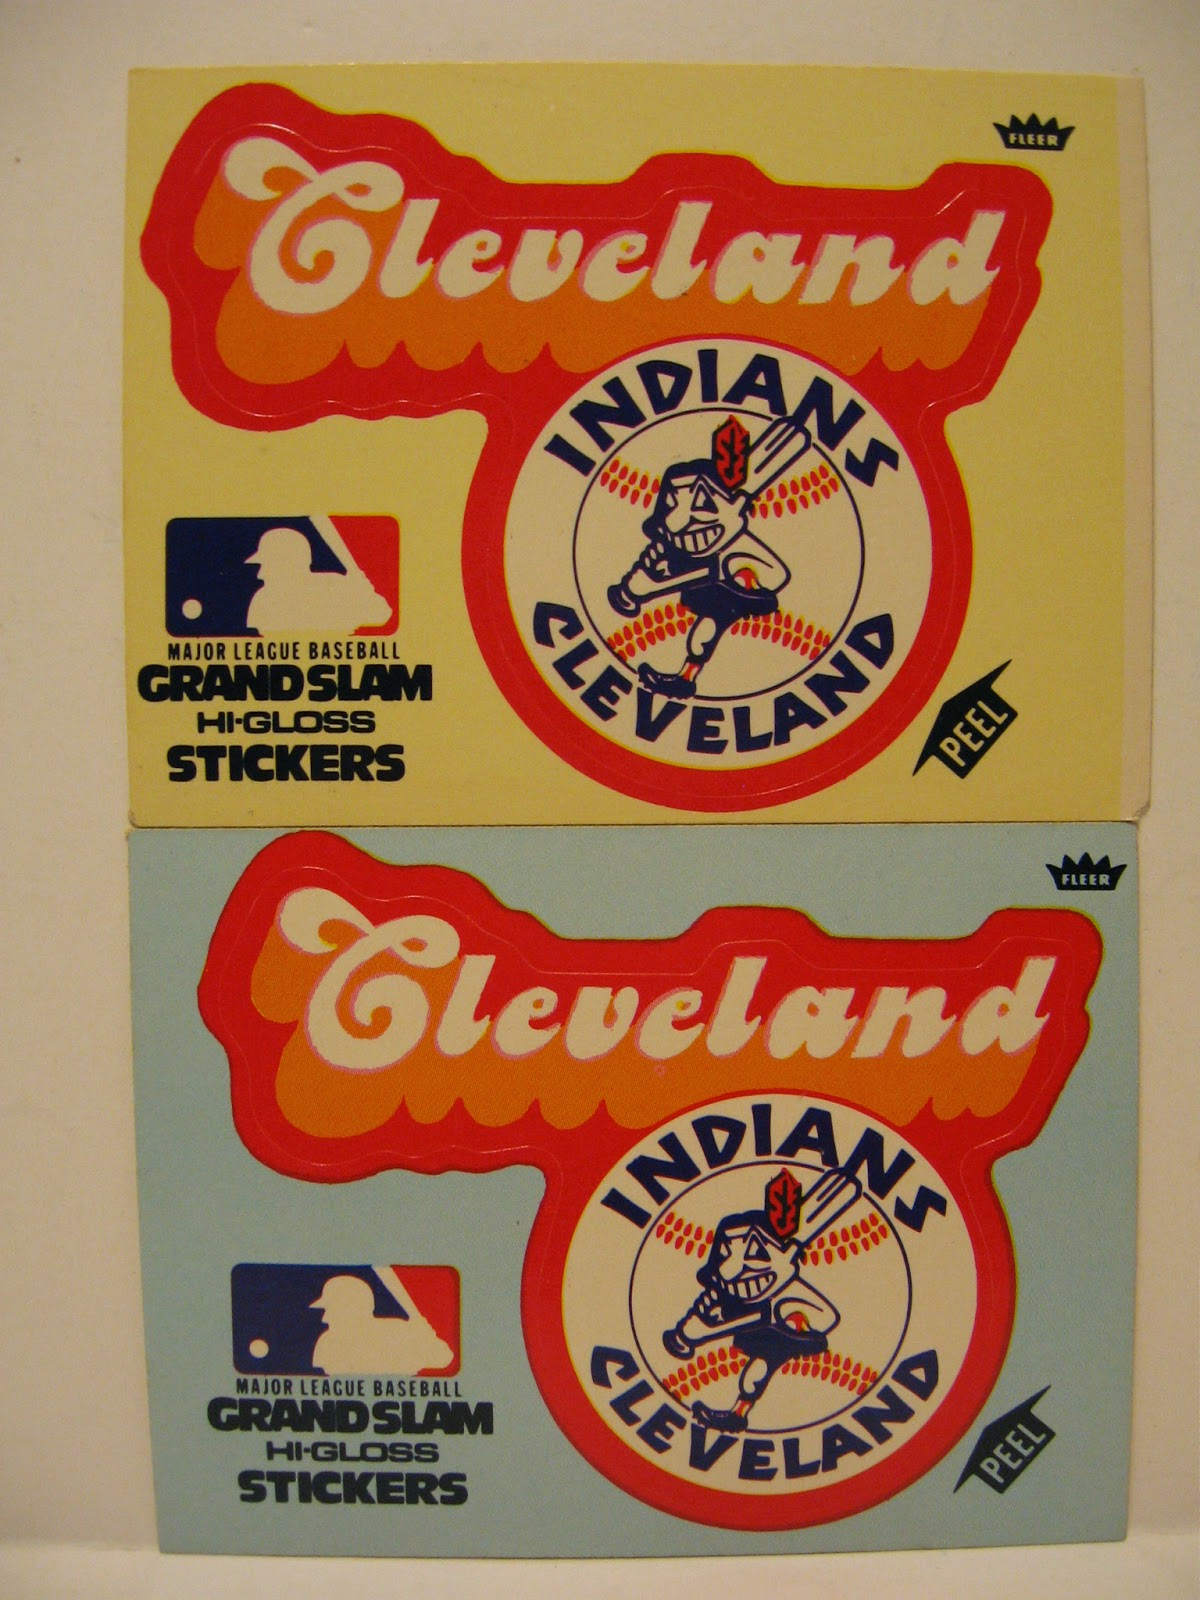 Baseball dads dugout team logos before wahoo disappears these are die cut so the center section fandeluxe Images